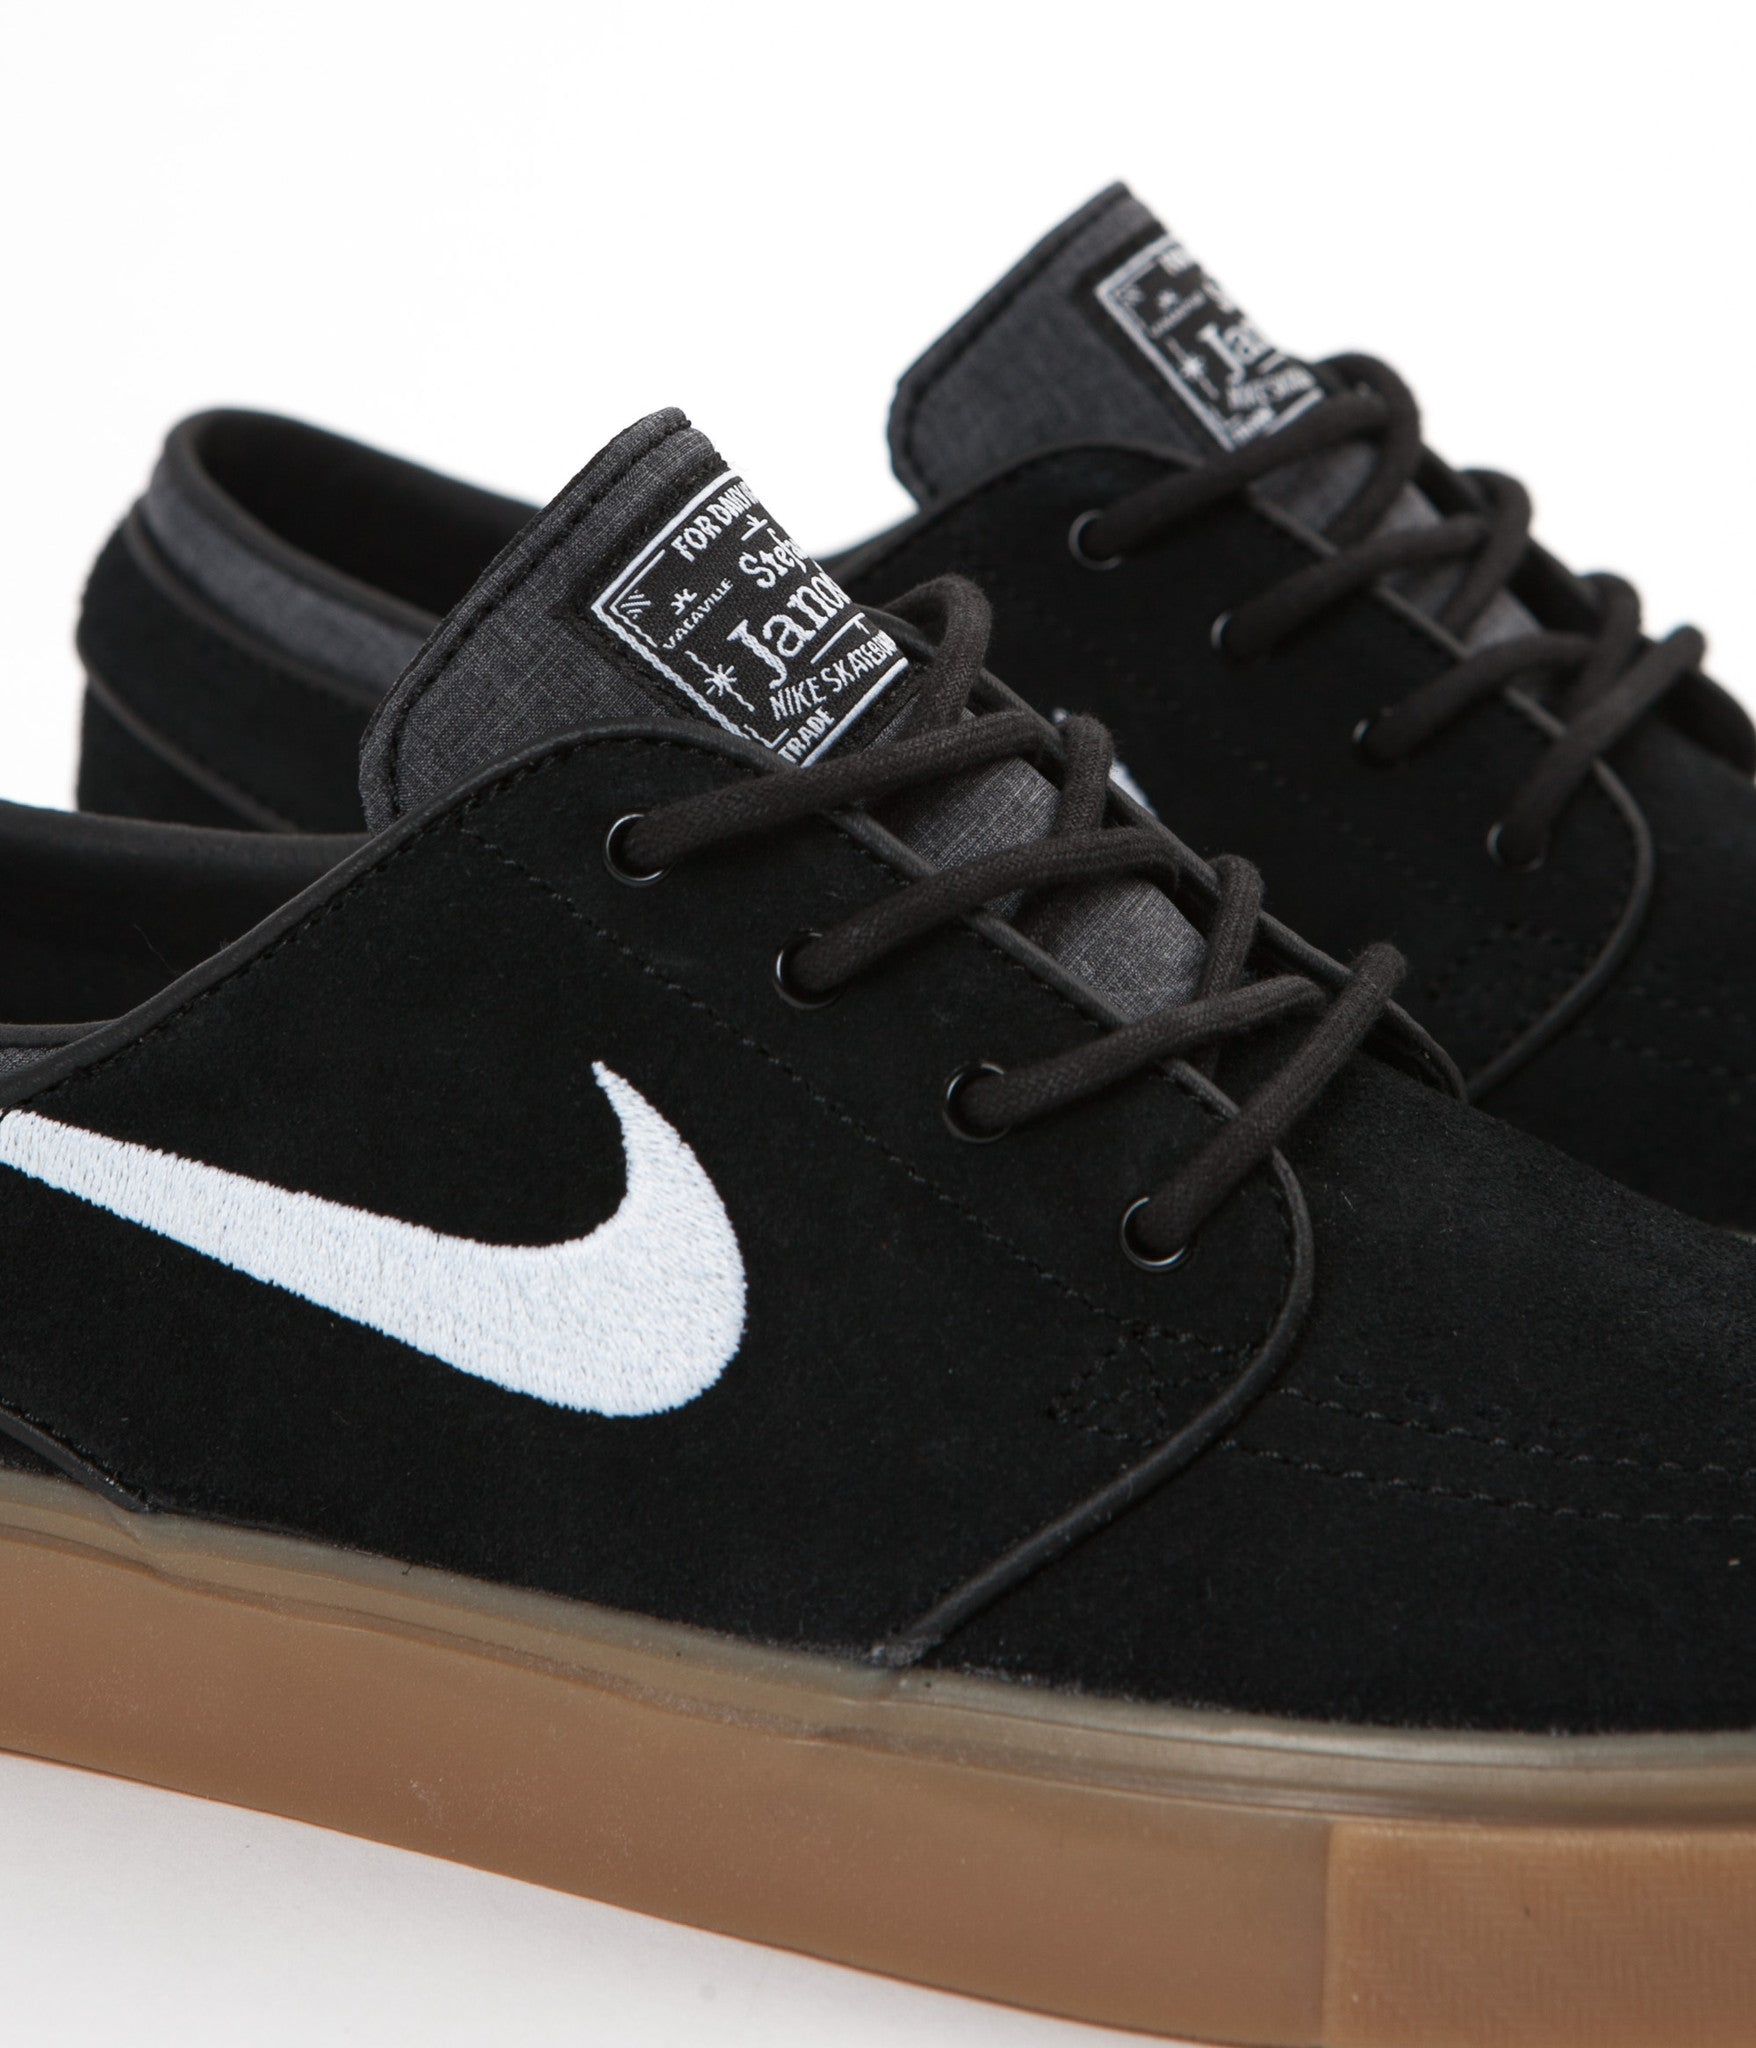 outlet store 32423 d0605 ... Nike SB Stefan Janoski Shoes - Black / White - Gum Light Brown ...